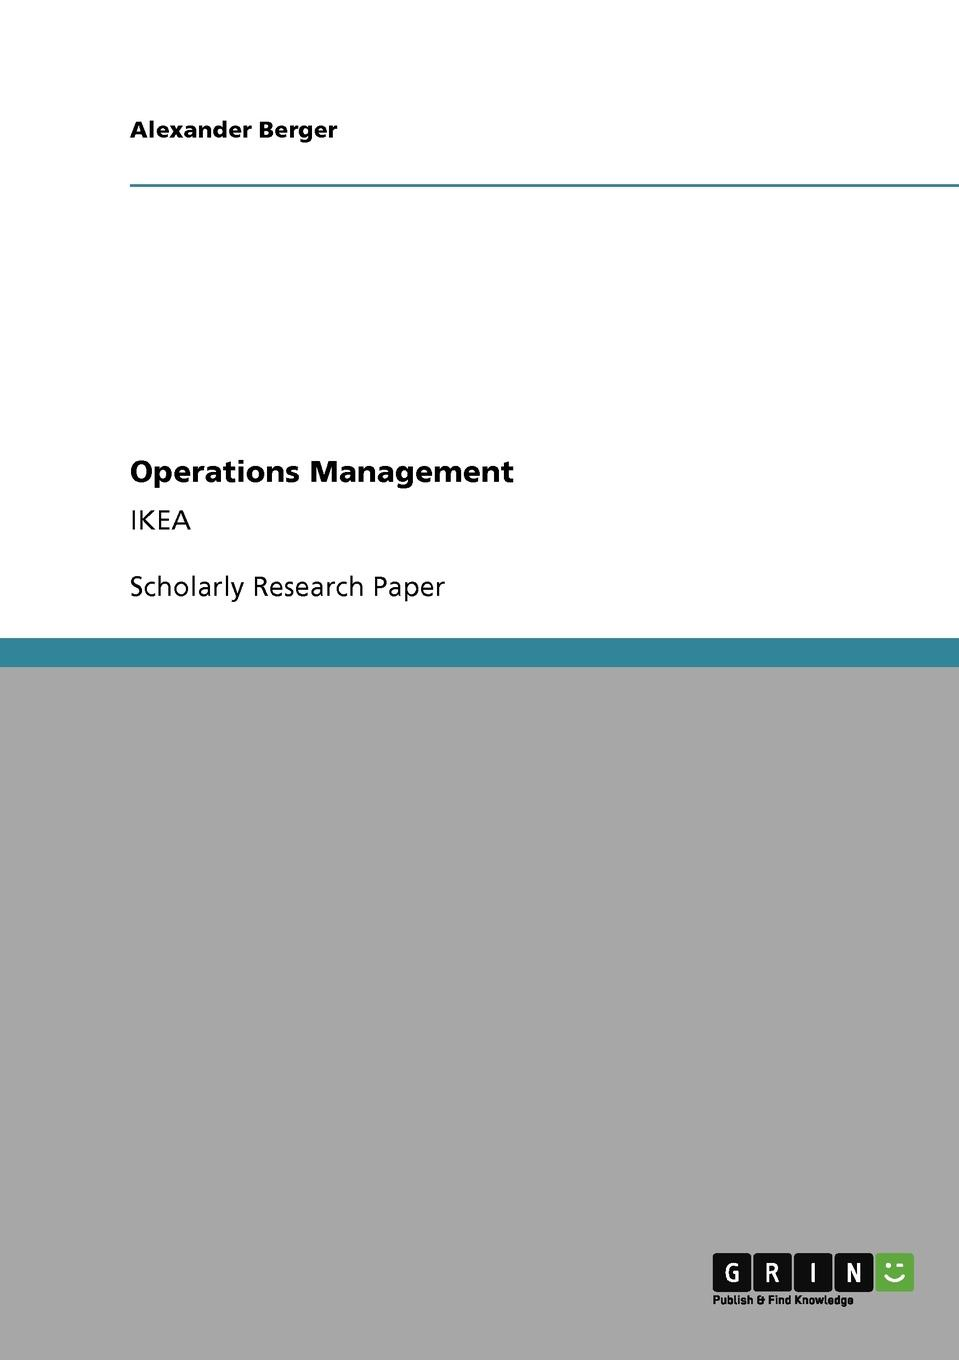 Alexander Berger Operations Management